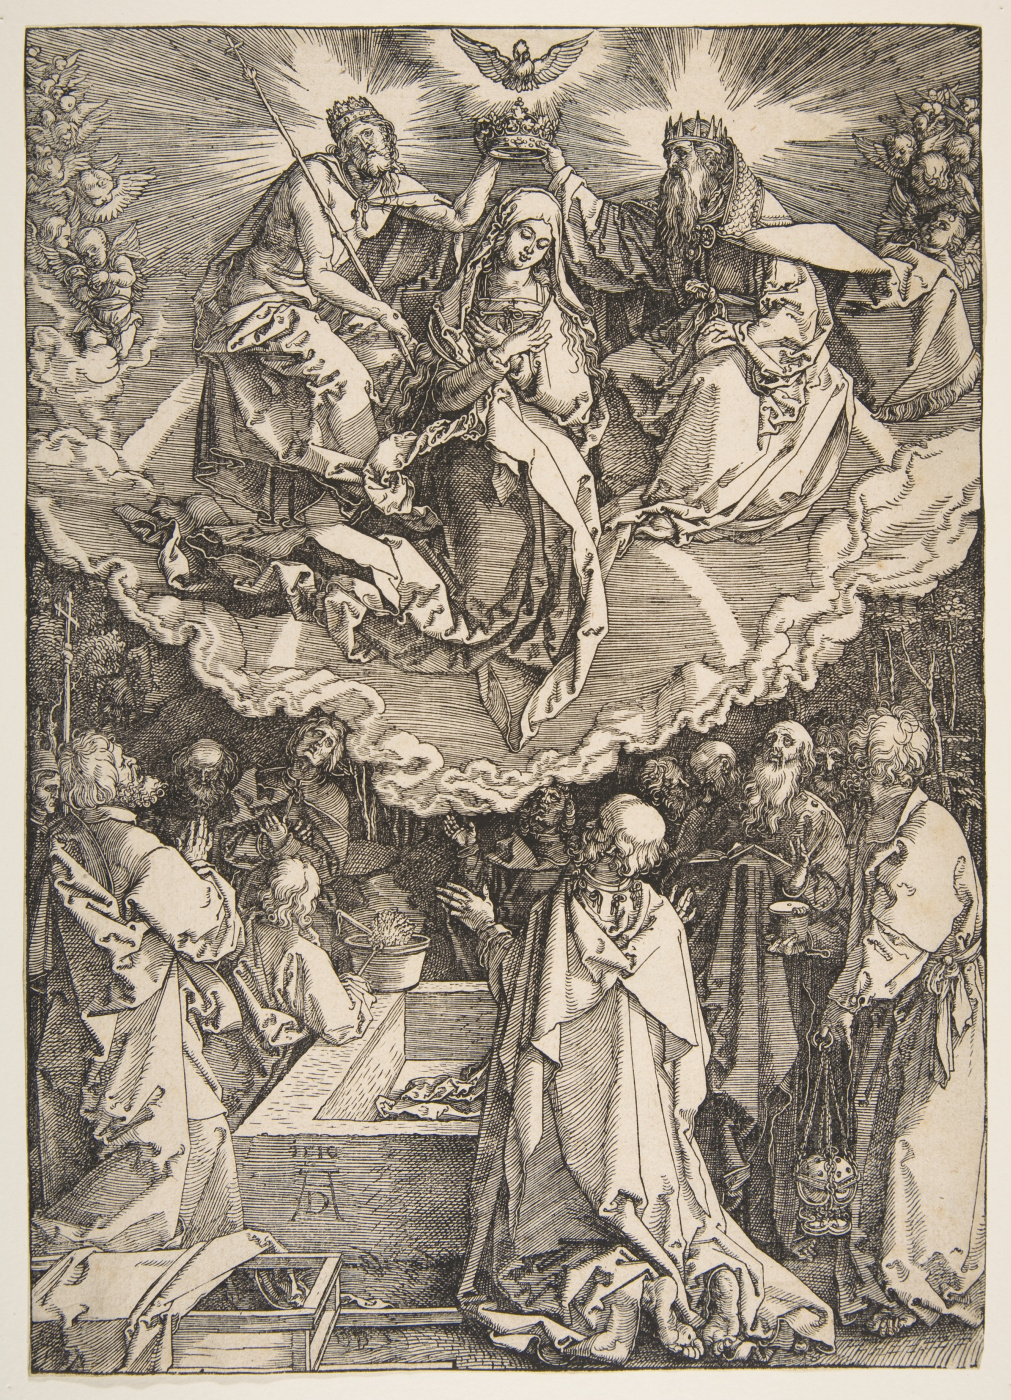 Albrecht Dürer. The assumption and coronation of the virgin